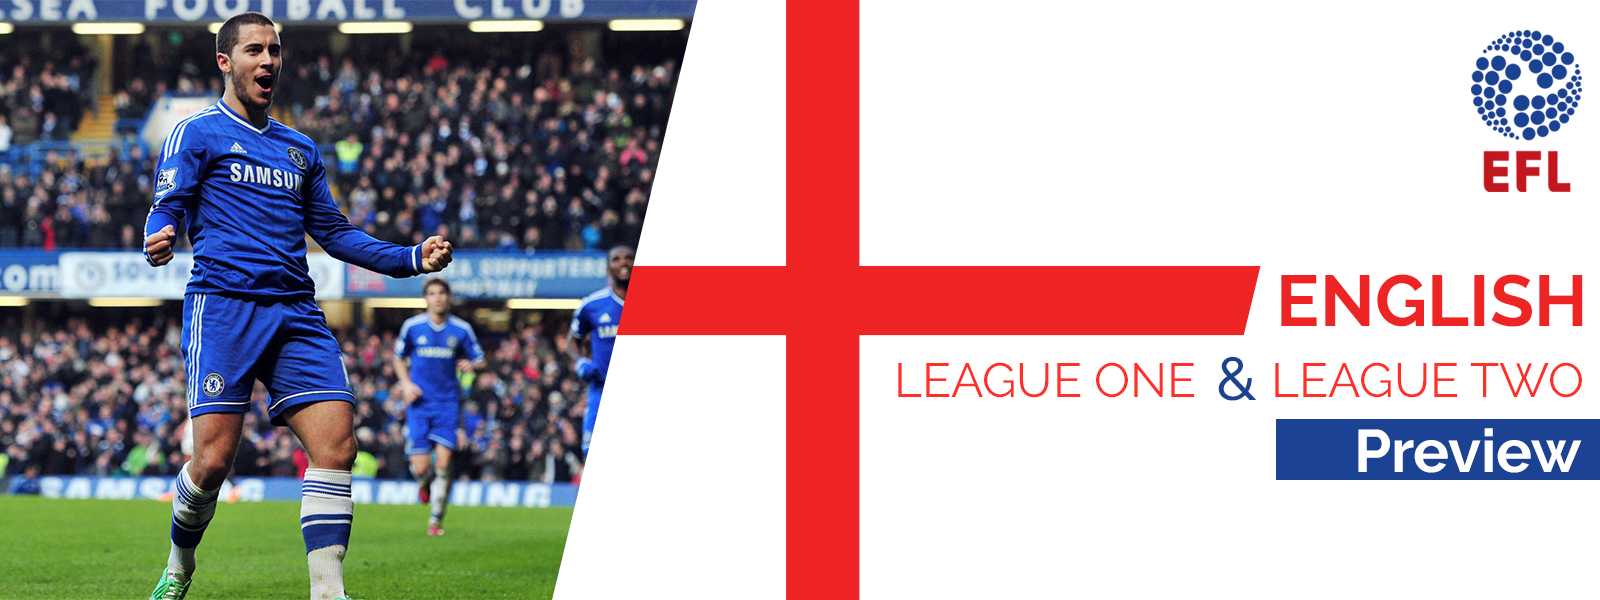 English League One and League Two Preview